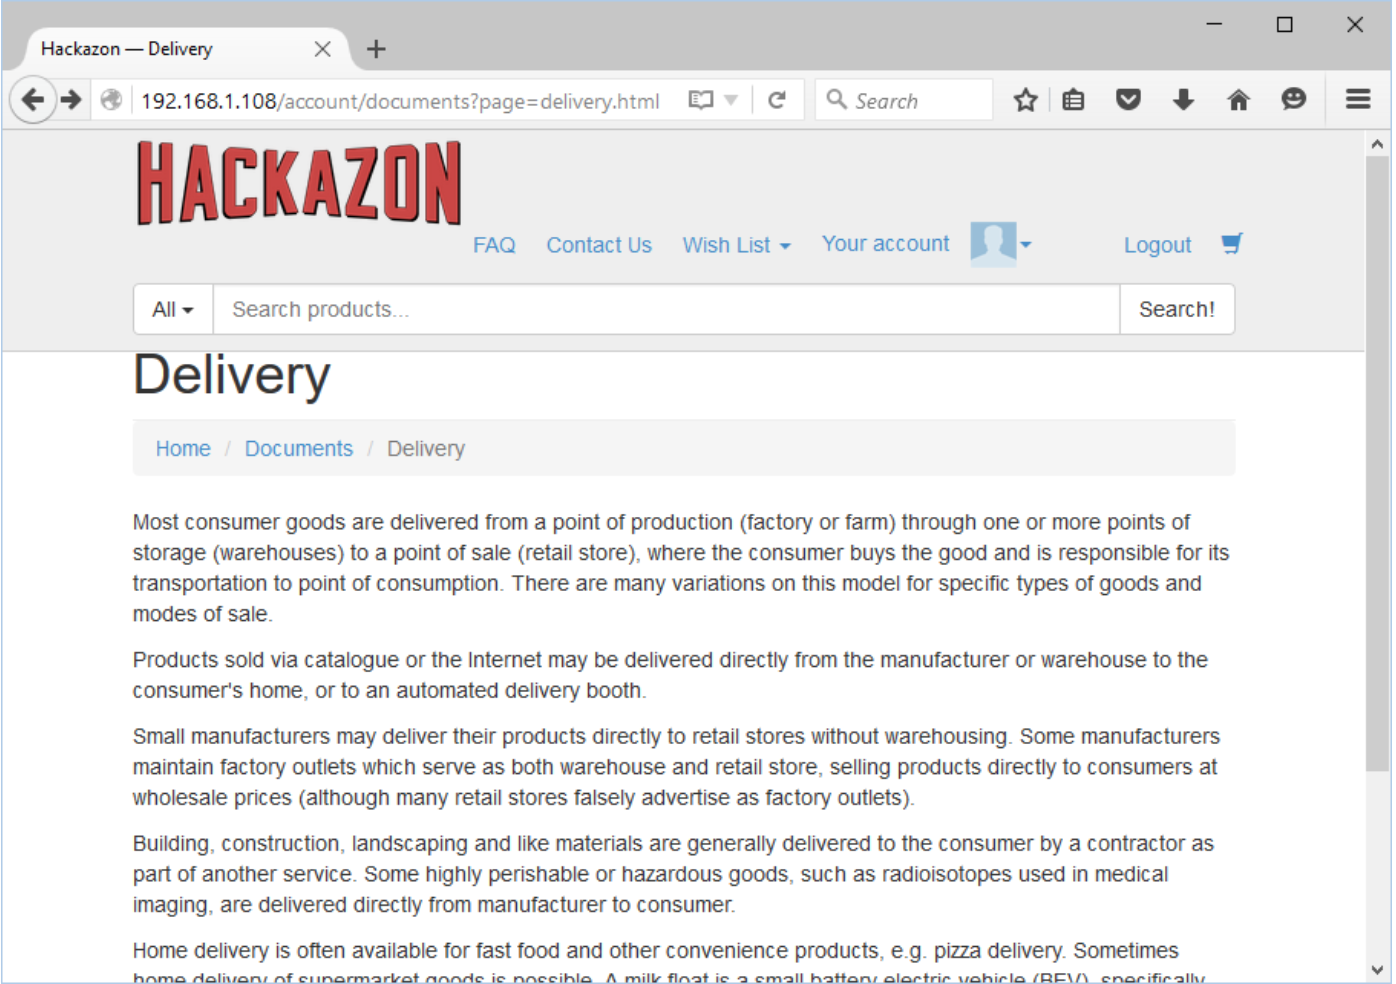 Conducting a Basic Test Manually Against Hackazon